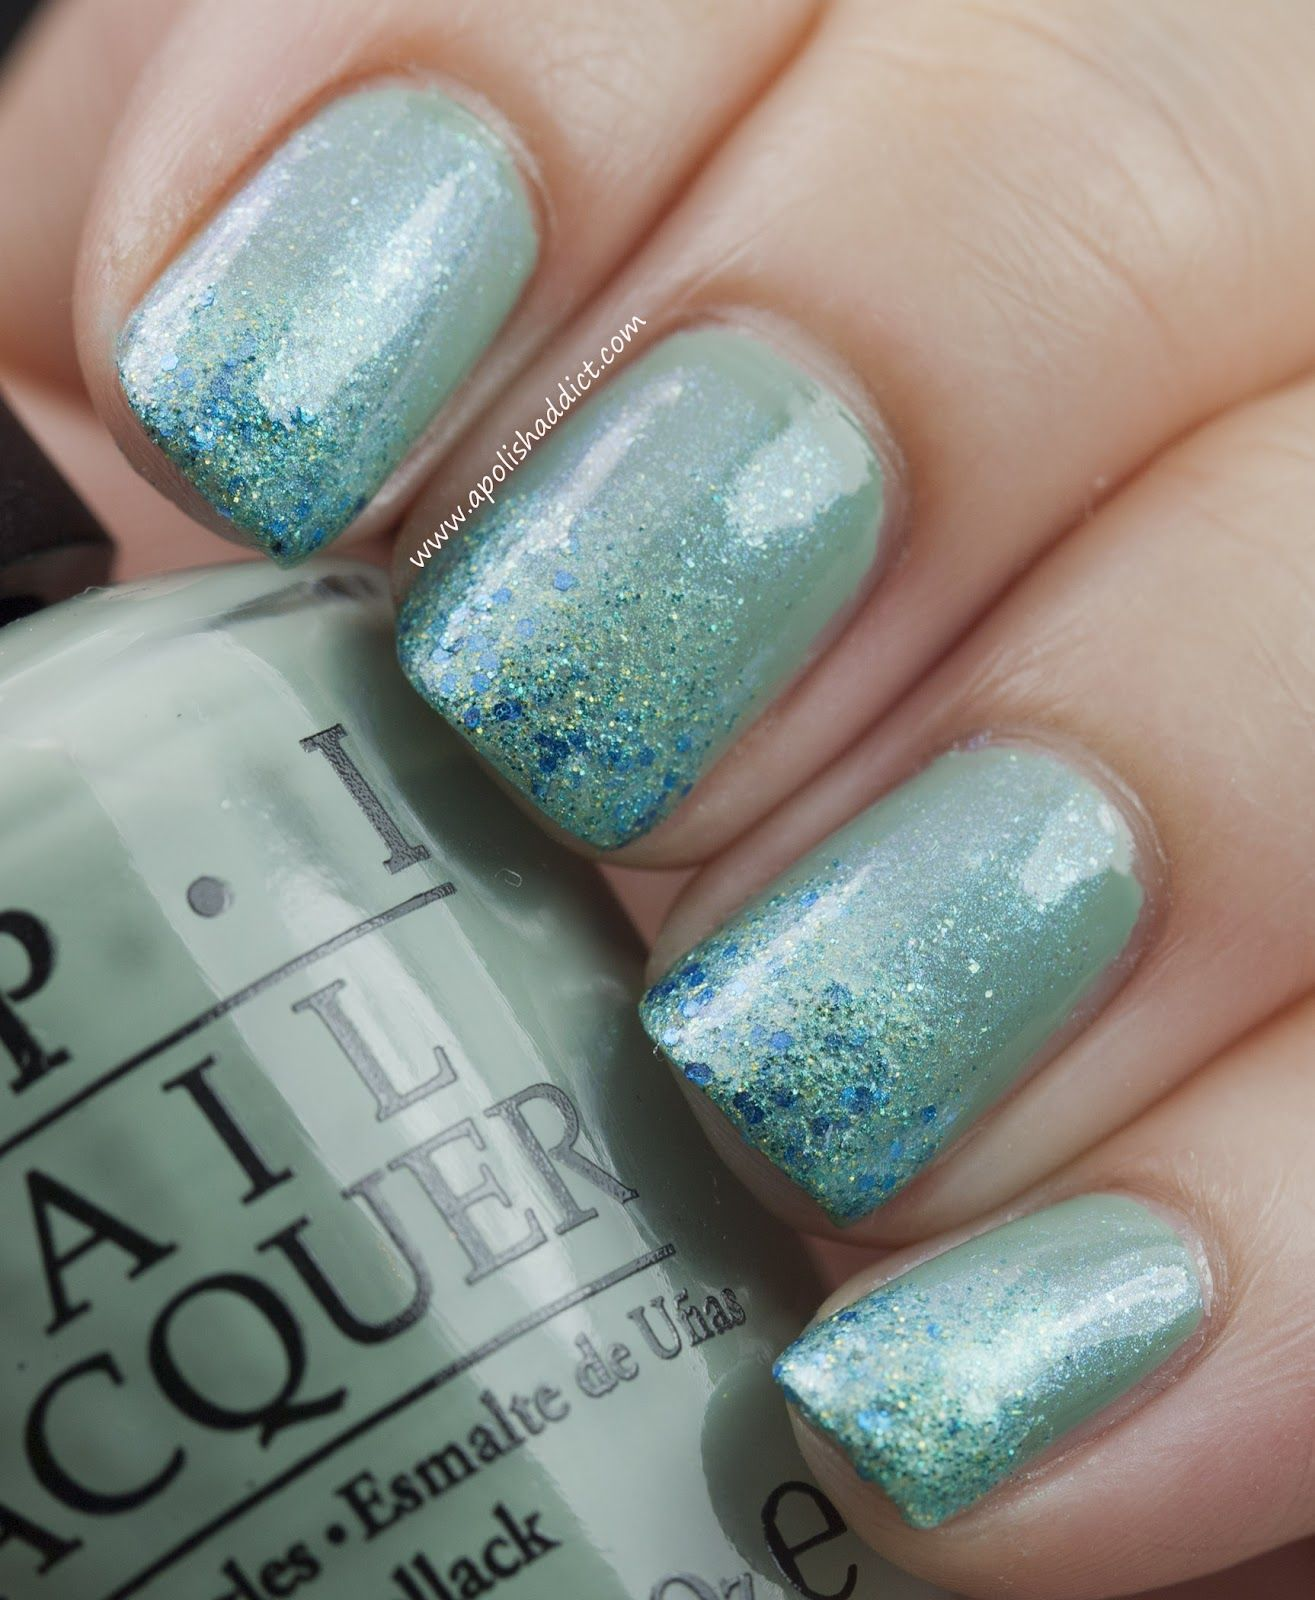 Mermaid\'s Tips | A Polish Addict | My Style | Pinterest